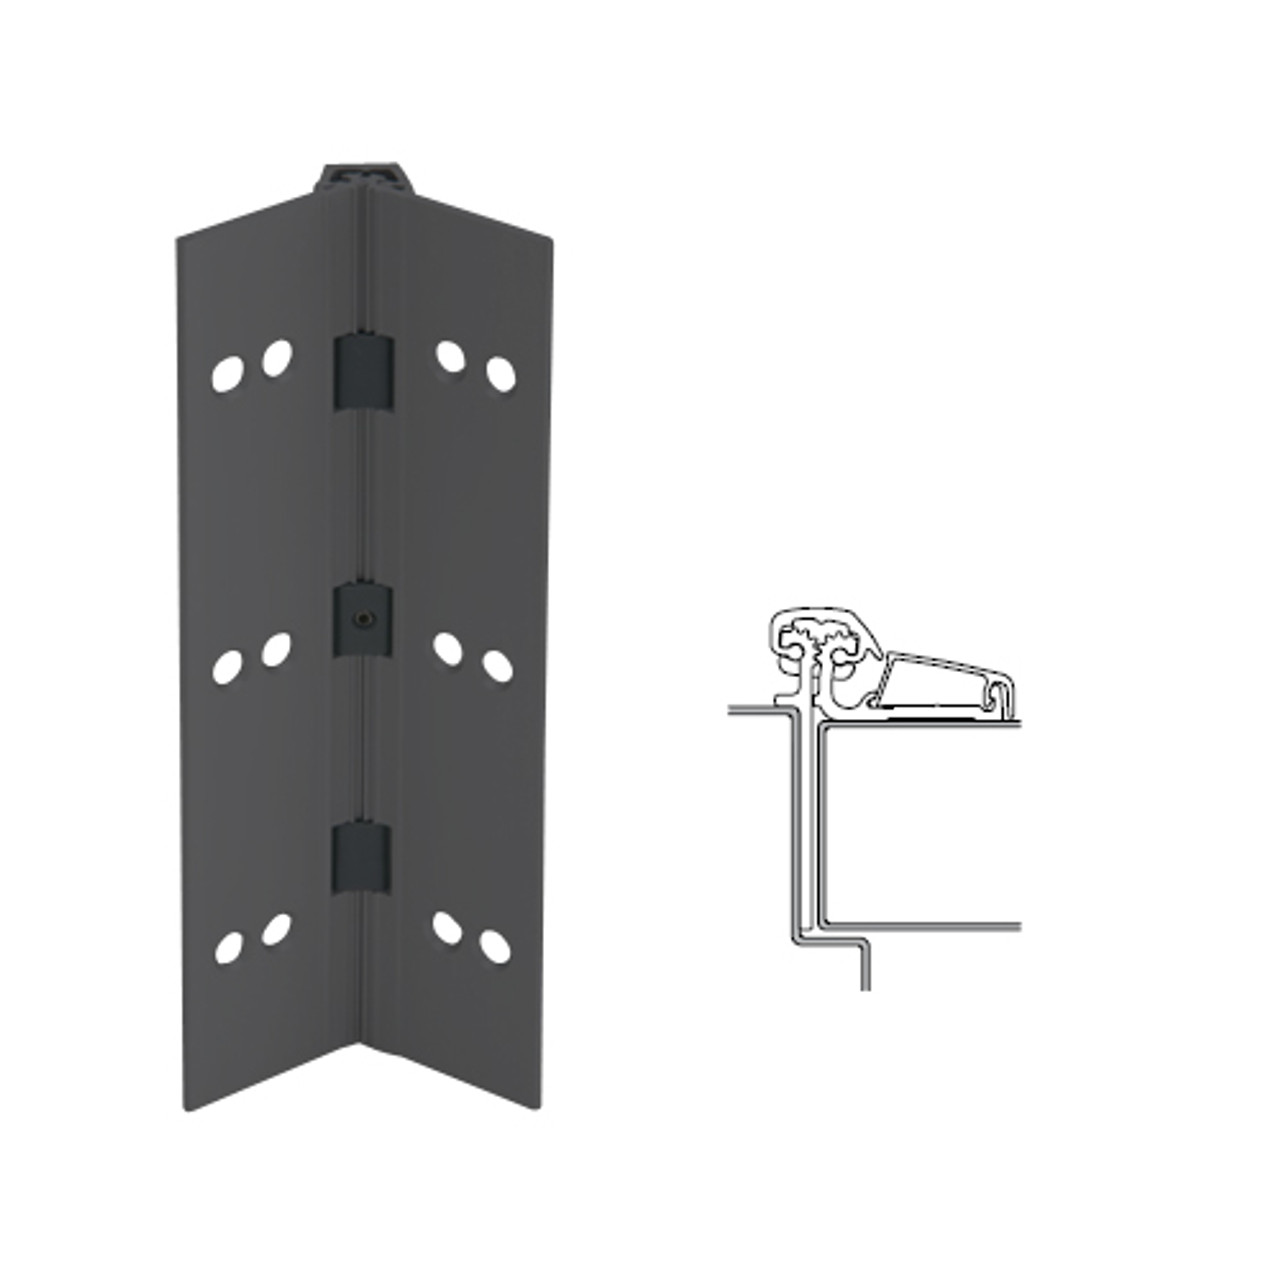 054XY-315AN-120 IVES Adjustable Half Surface Continuous Geared Hinges in Anodized Black